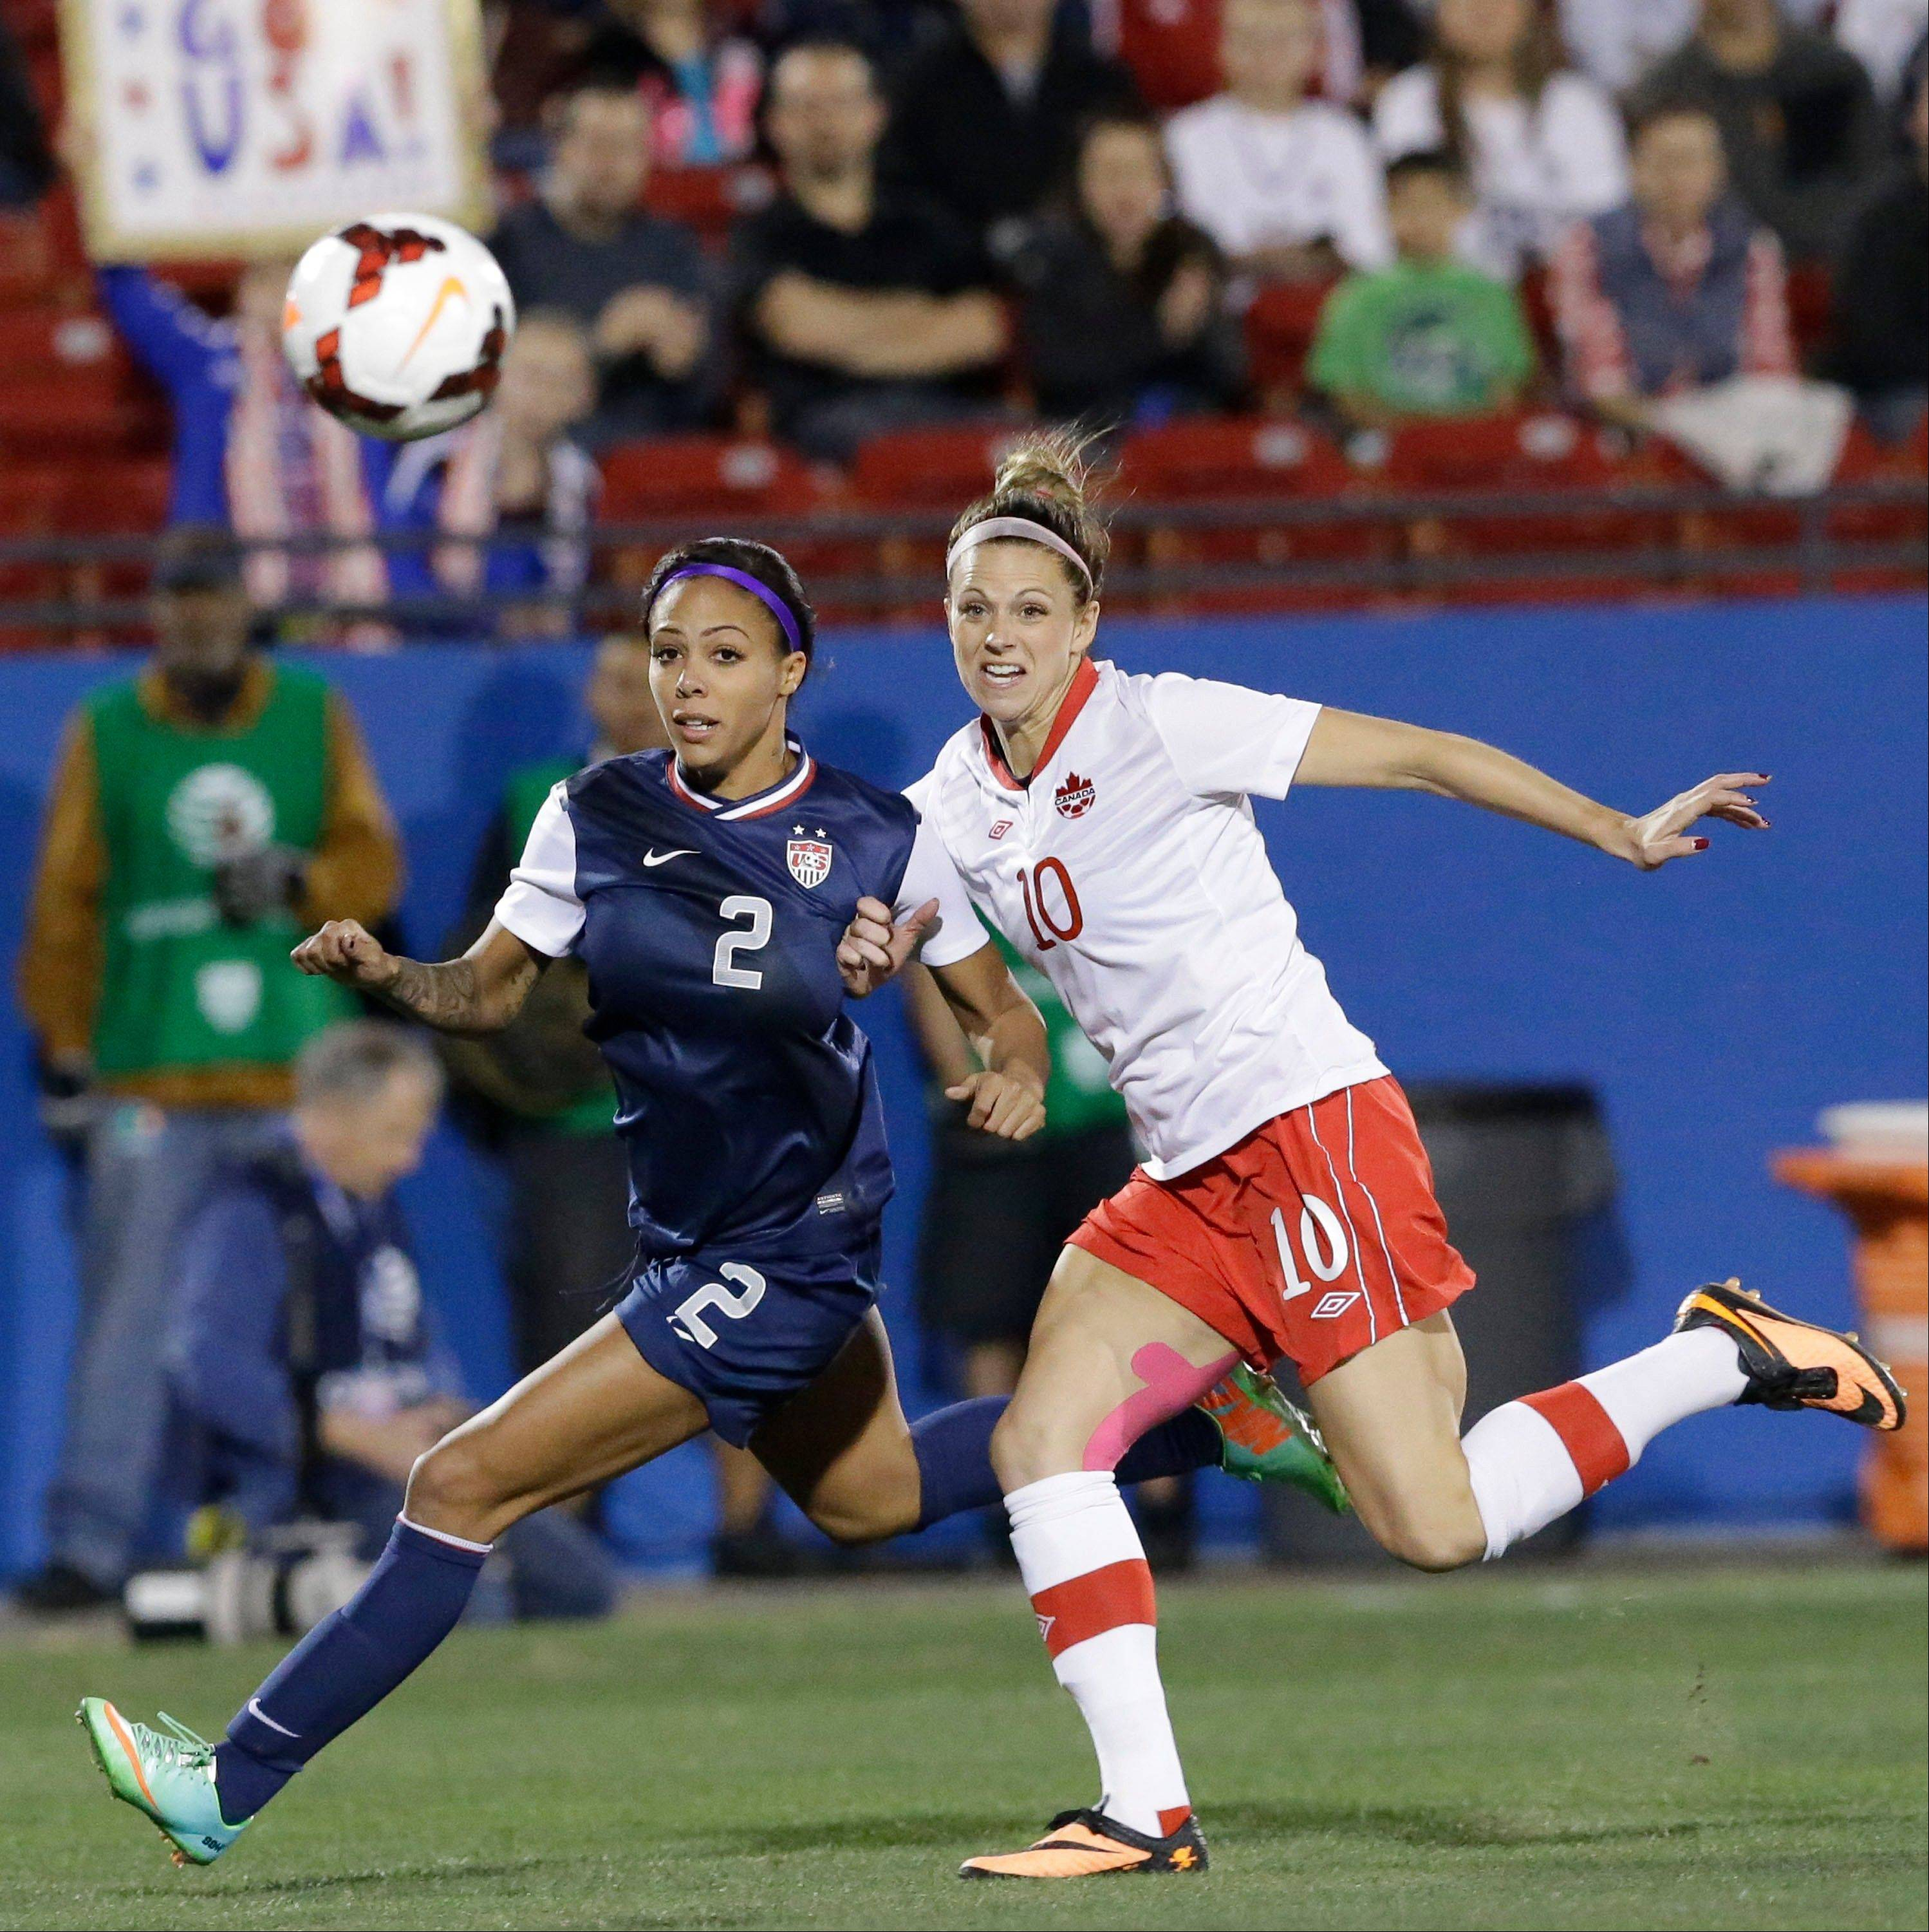 U.S. forward Sydney Leroux, left, and Canada defender Lauren Sesselmann chase the ball during the first half of a Friday's game in Frisco, Texas. The United States won 1-0.